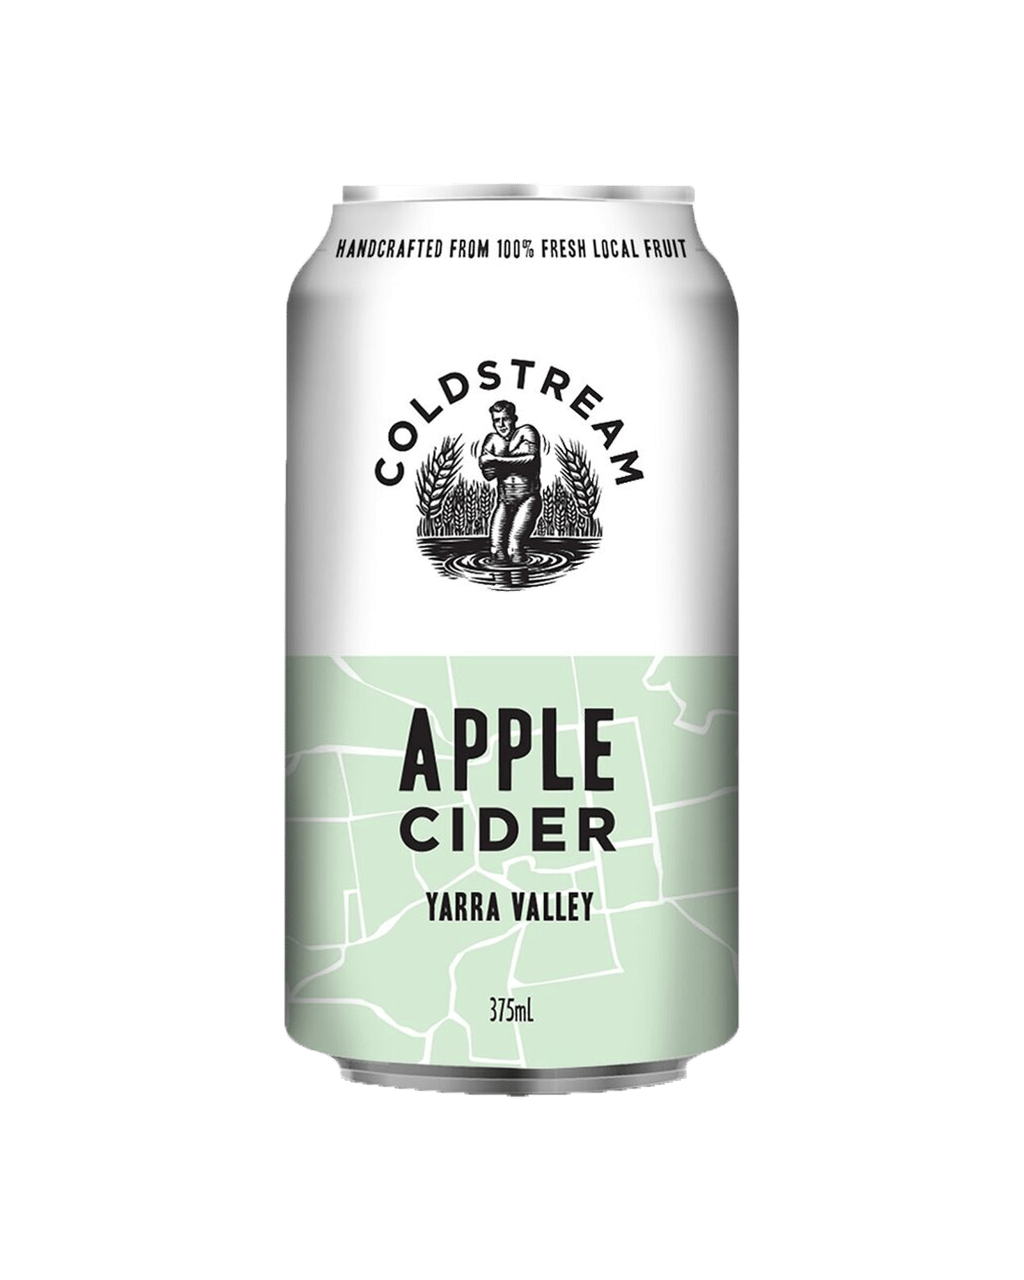 Coldstream Apple Cider Cans 375mL  6961c82bf